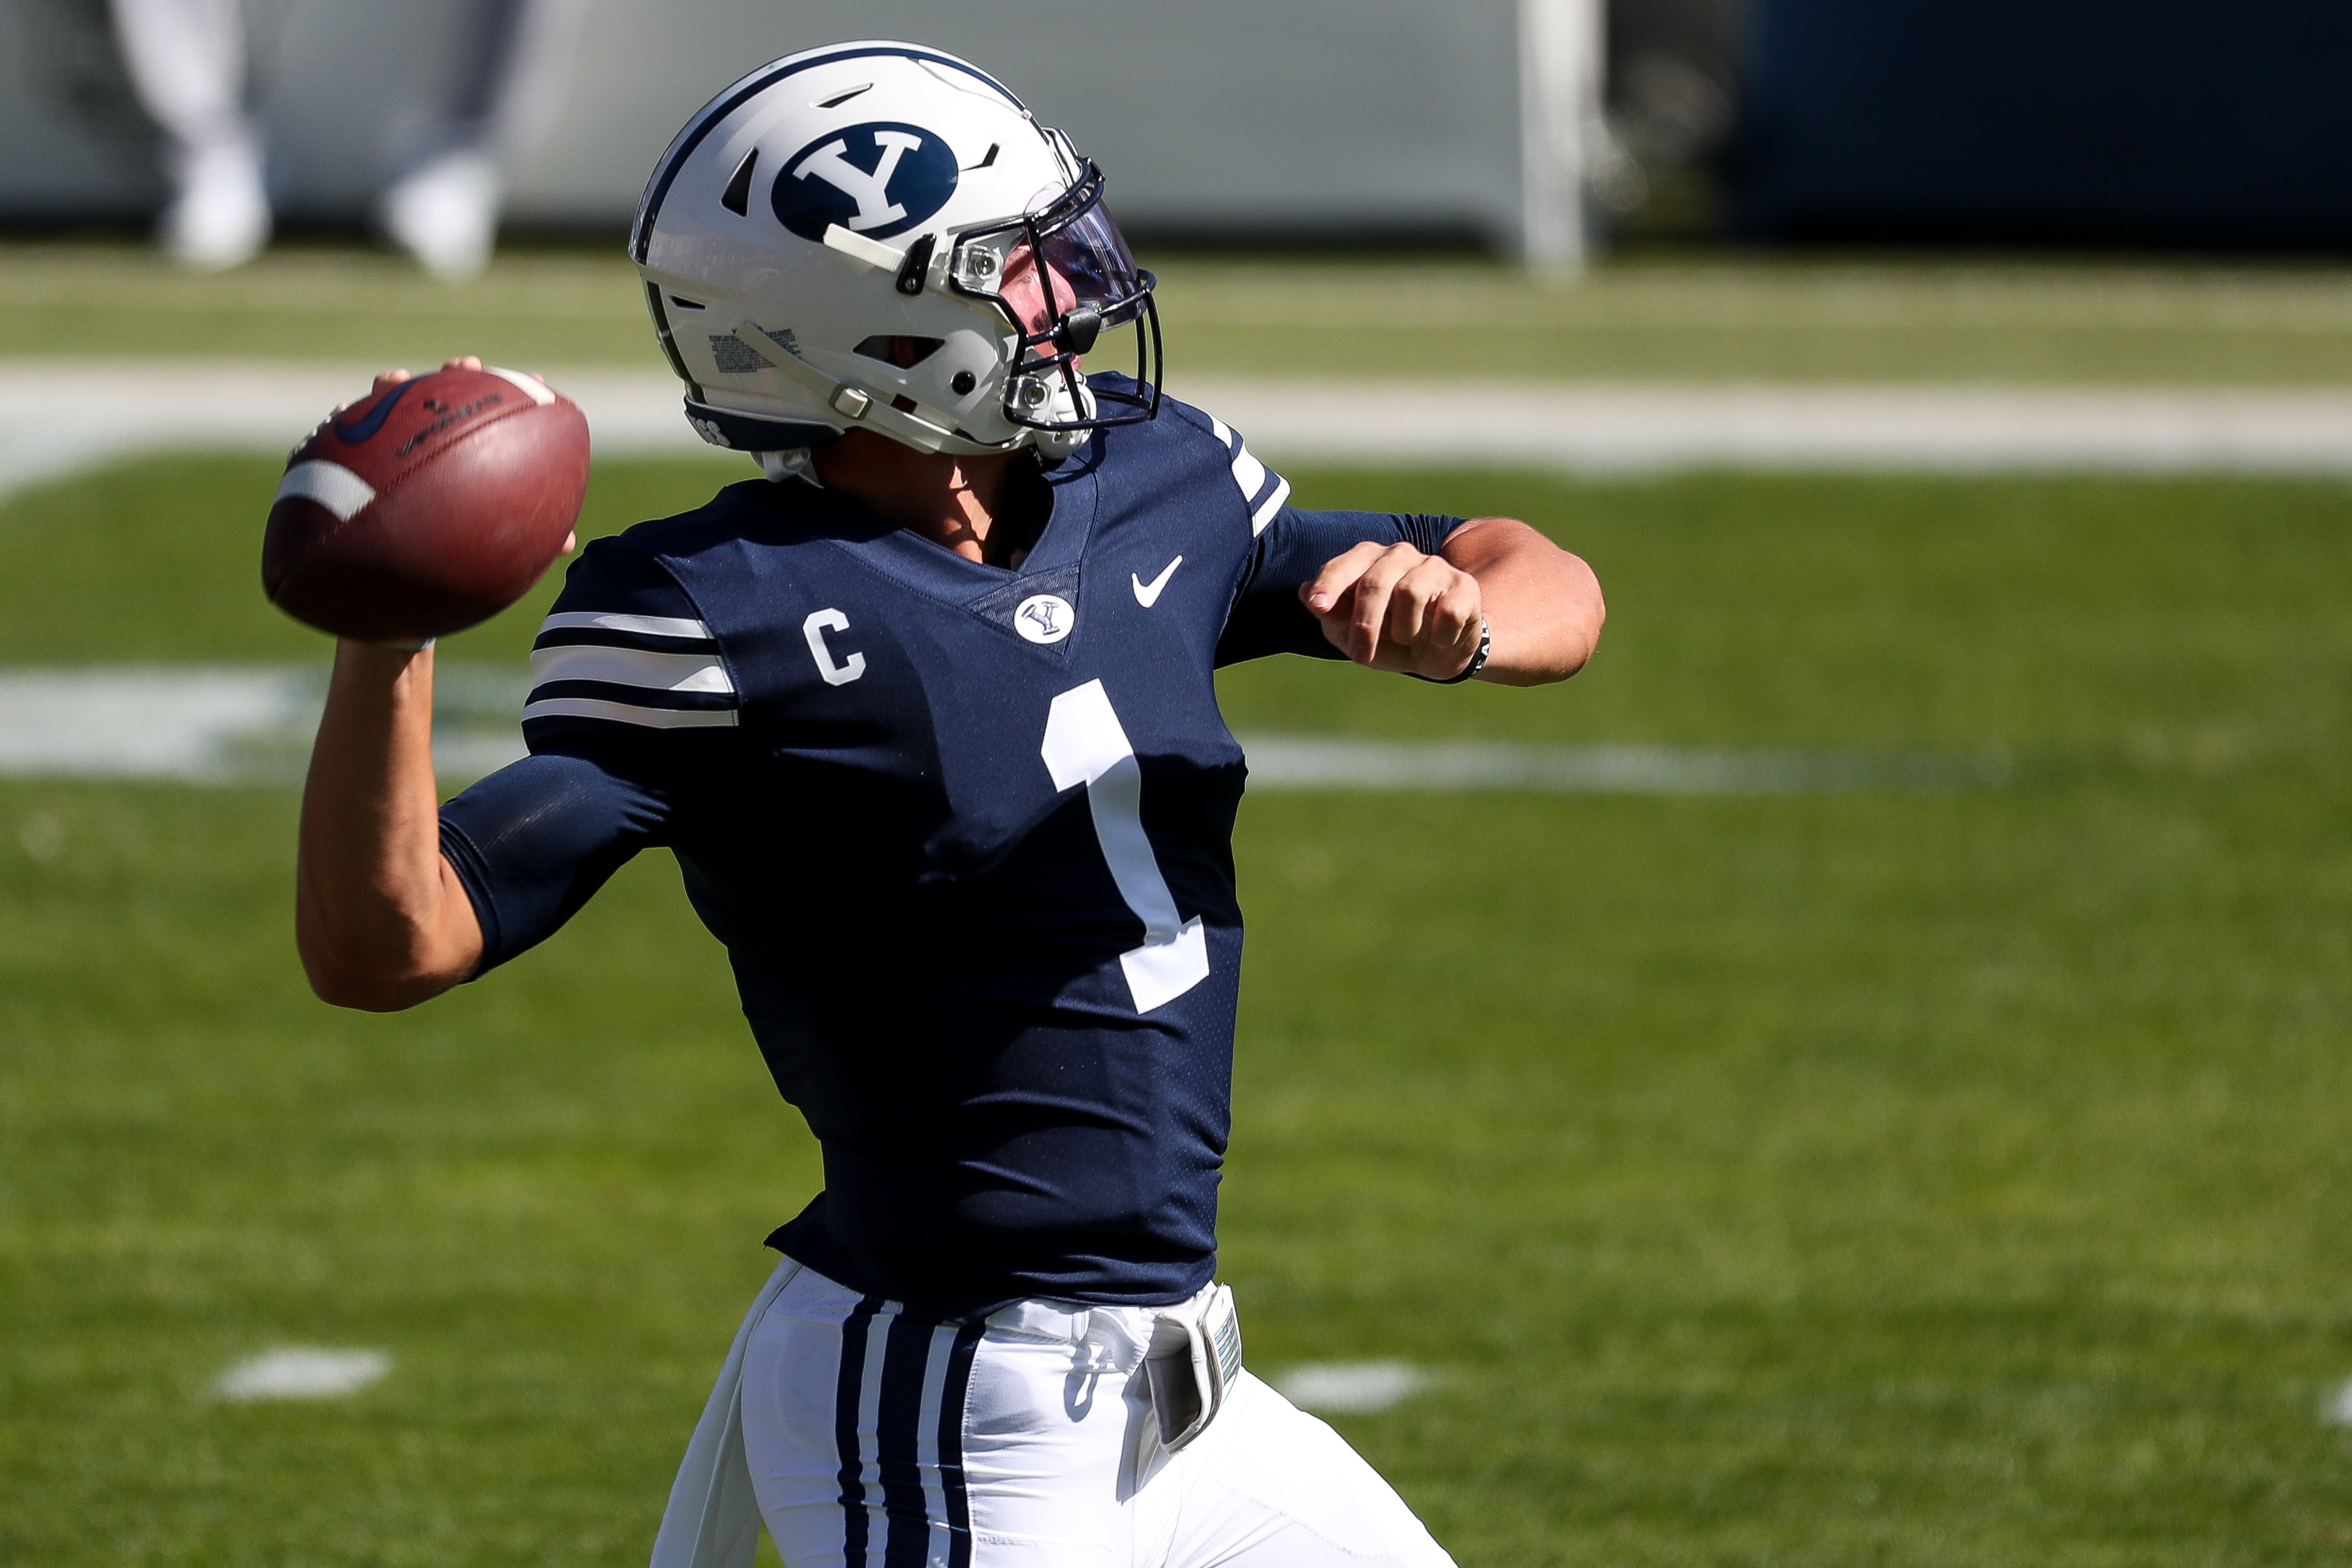 Brigham Young Cougars quarterback Zach Wilson (1) warms up before the game against UTSA at LaVell Edwards Stadium in Provo on Saturday, Oct. 10, 2020.